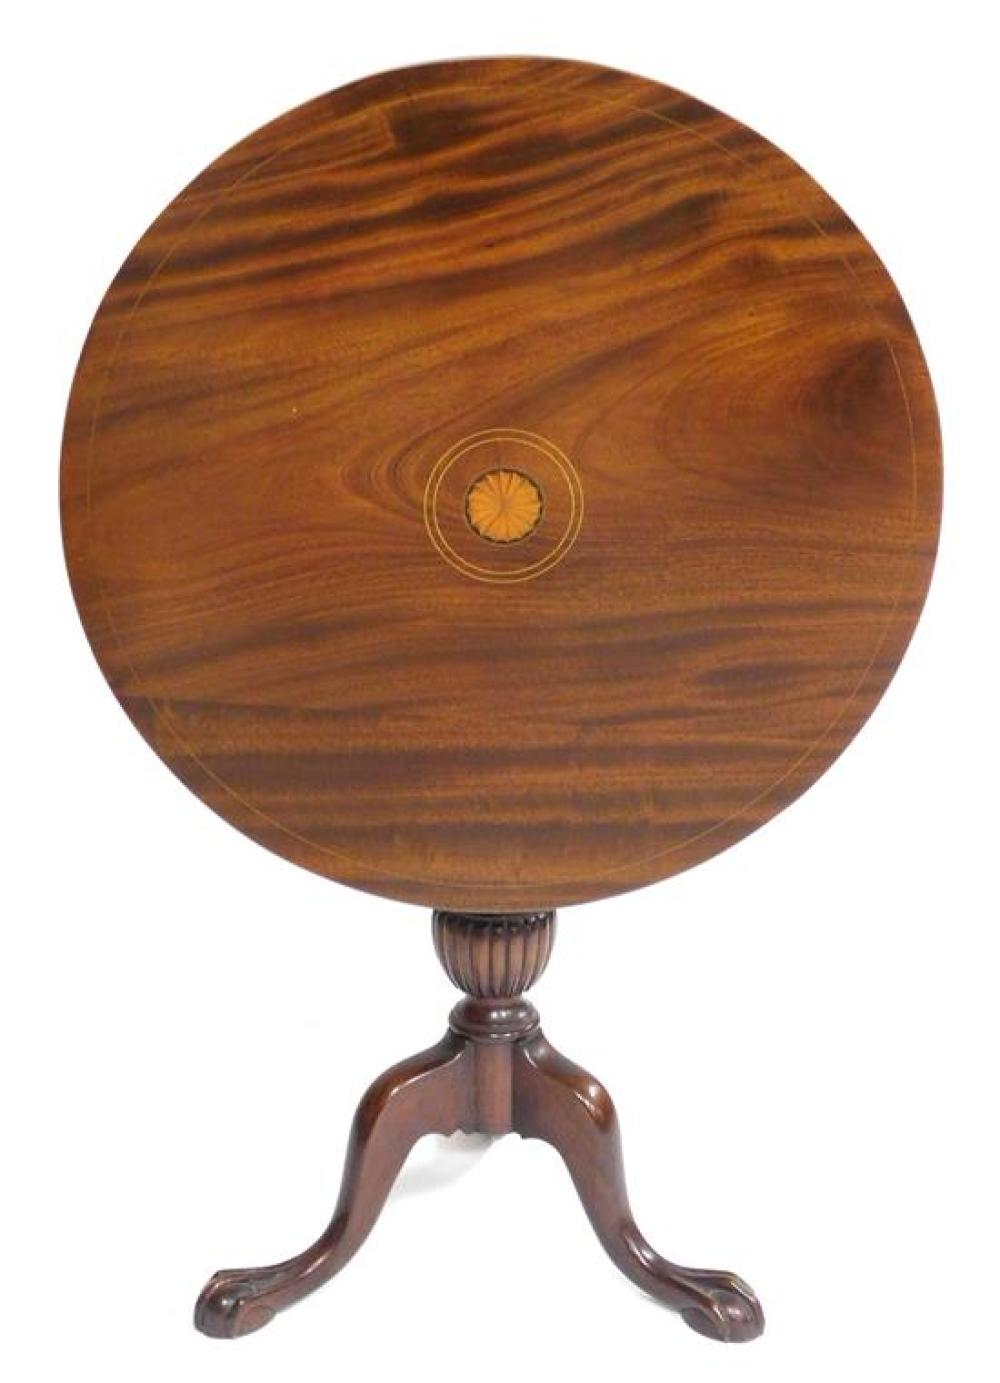 Chippendale style tilt top stand, round top with inlaid pinwheel and stringing, urn carved standard with reeding, raised on three ca...